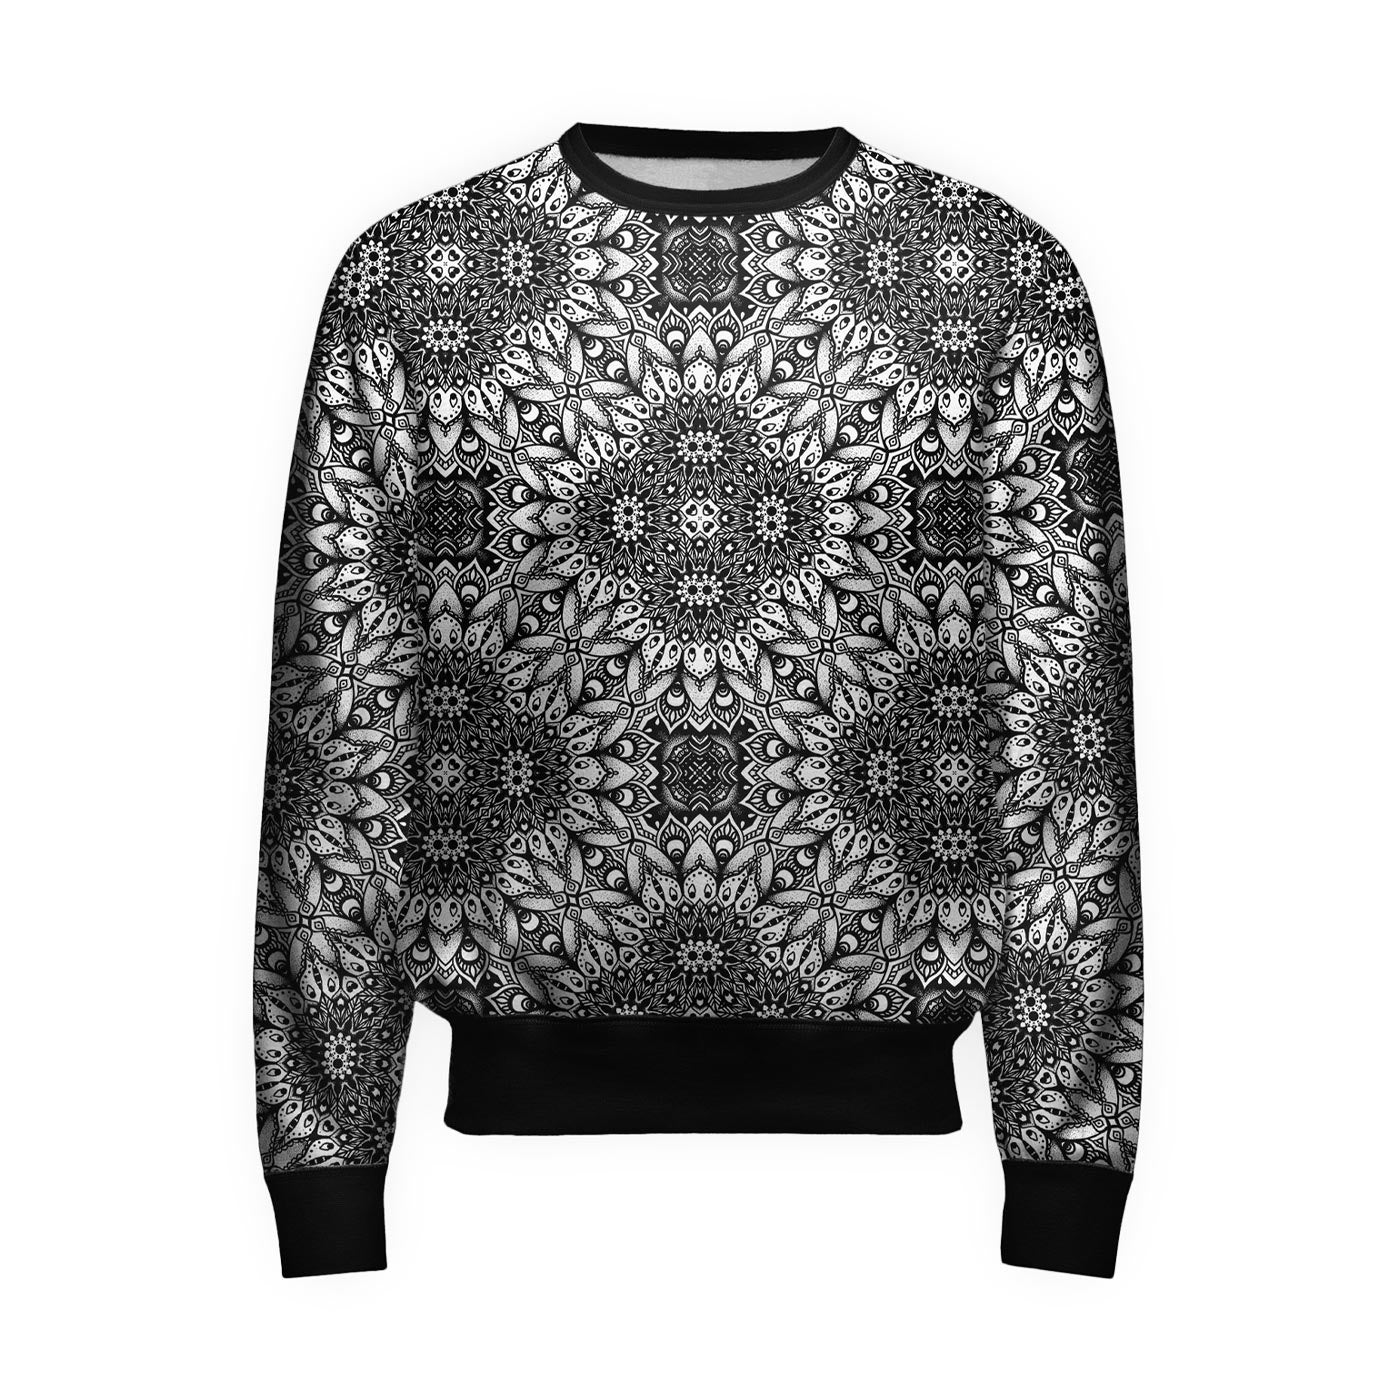 Heliantus Sweatshirt